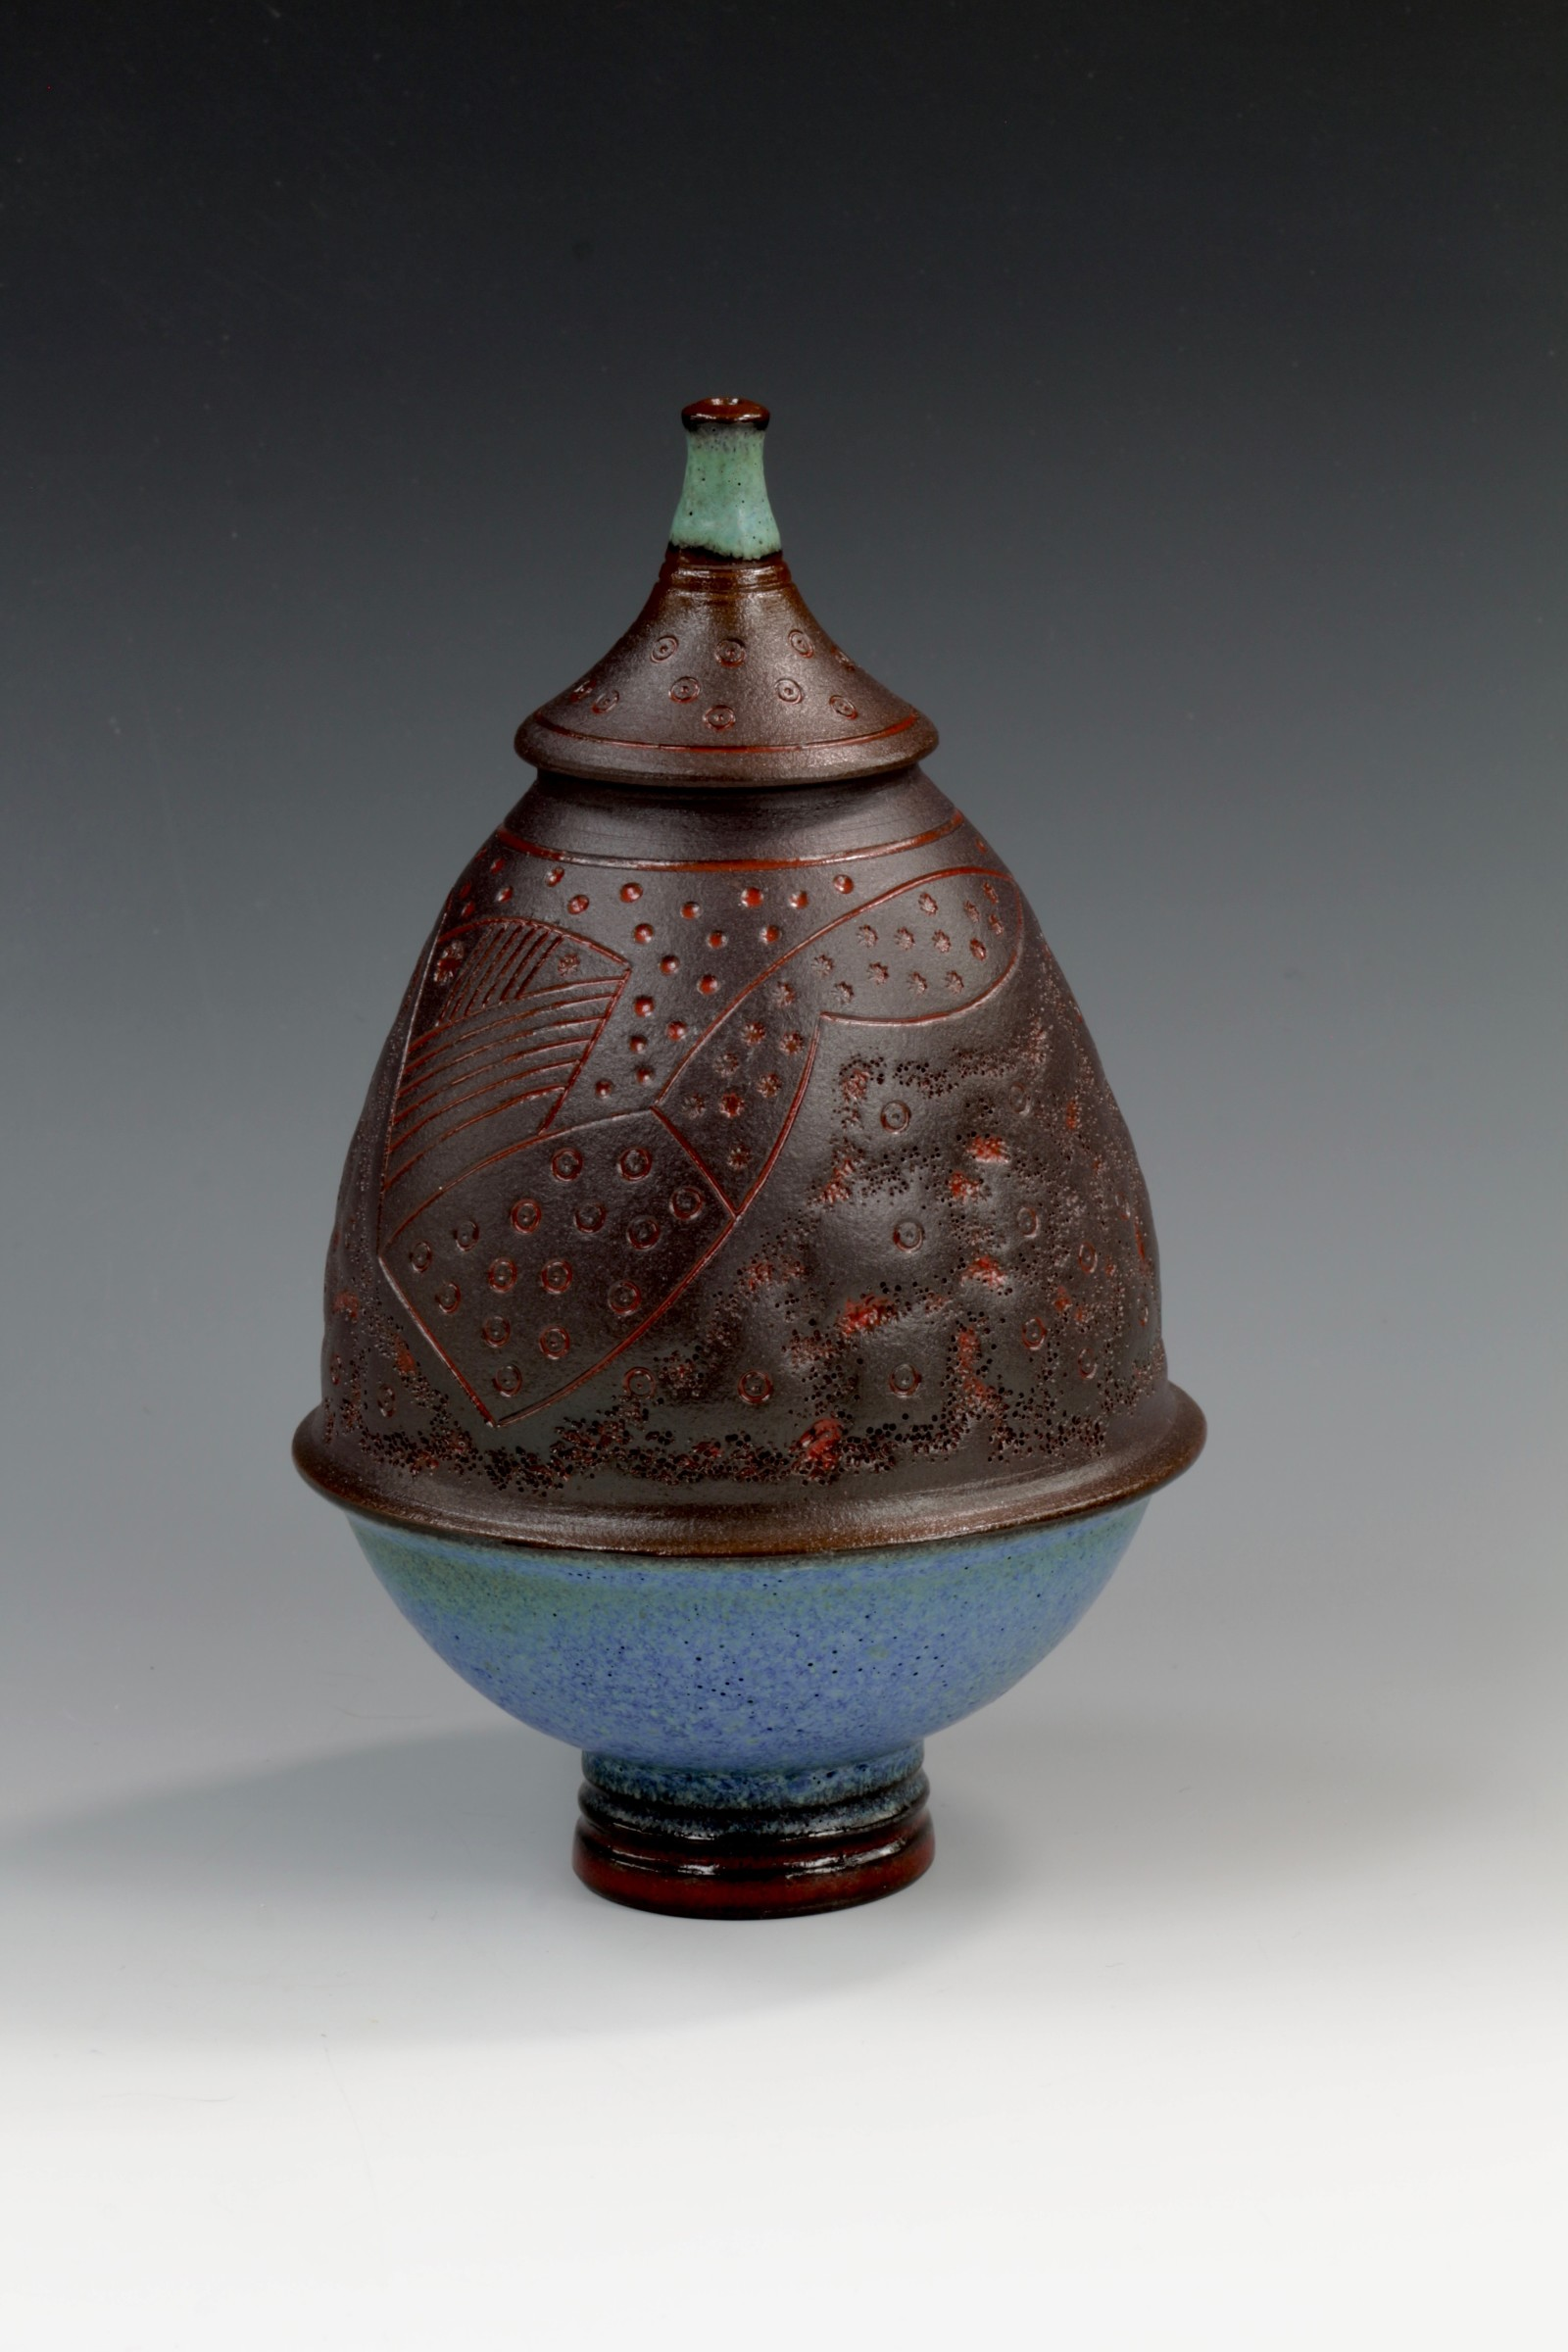 "<span class=""link fancybox-details-link""><a href=""/artists/61-geoffrey-swindell/works/6909-geoffrey-swindell-lidded-pot-2020/"">View Detail Page</a></span><div class=""artist""><strong>Geoffrey Swindell</strong></div> b. 1945 <div class=""title""><em>Lidded Pot</em>, 2020</div> <div class=""signed_and_dated"">impressed artist's seal to base</div> <div class=""medium"">porcelain</div><div class=""price"">£210.00</div><div class=""copyright_line"">Own Art: £ 21 x 10 Months, 0% APR</div>"